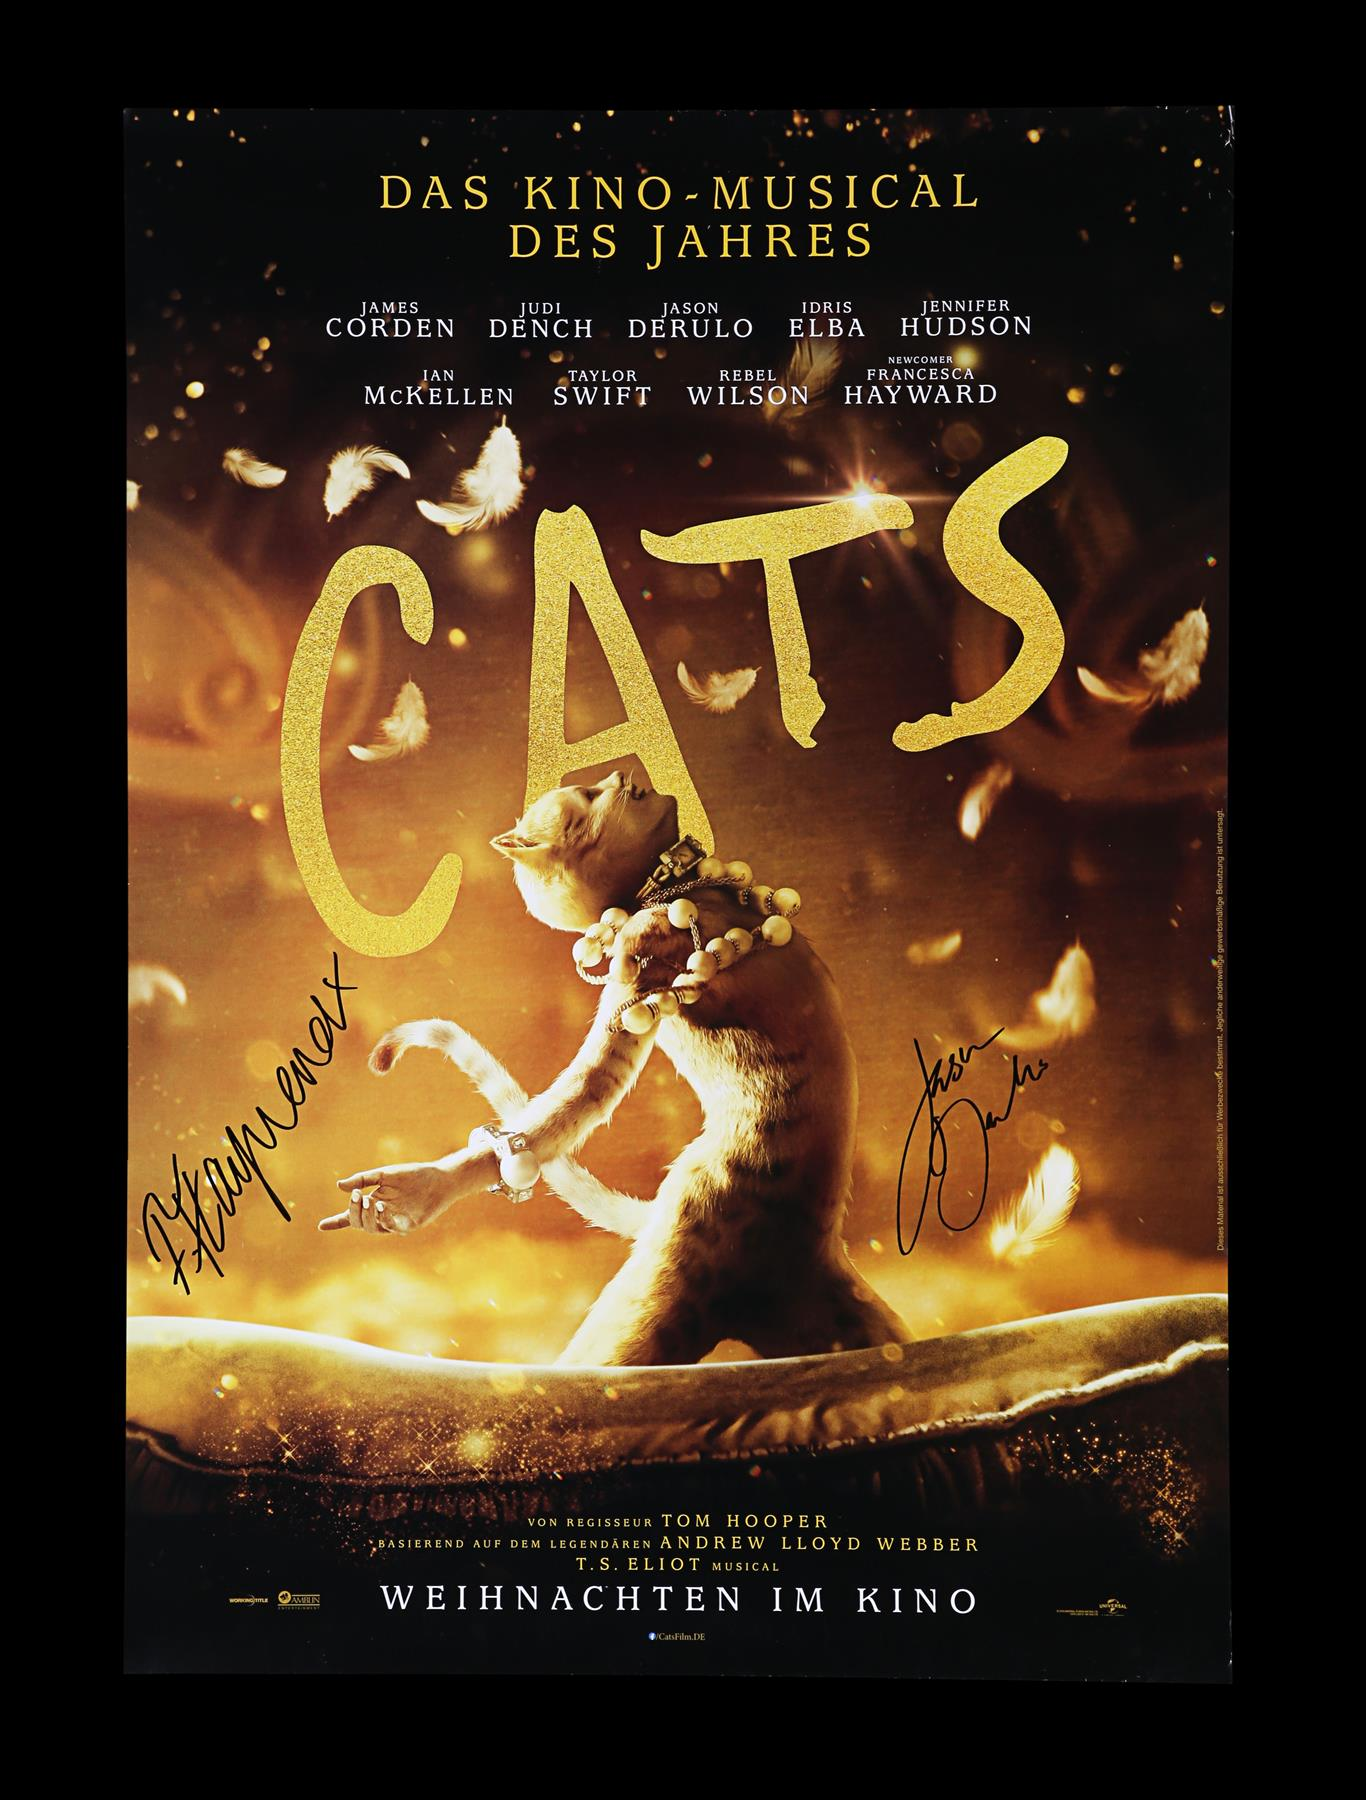 CATS (2019) - Poster, 2019, Autographed by Jason Derulo and Francesca Hayward